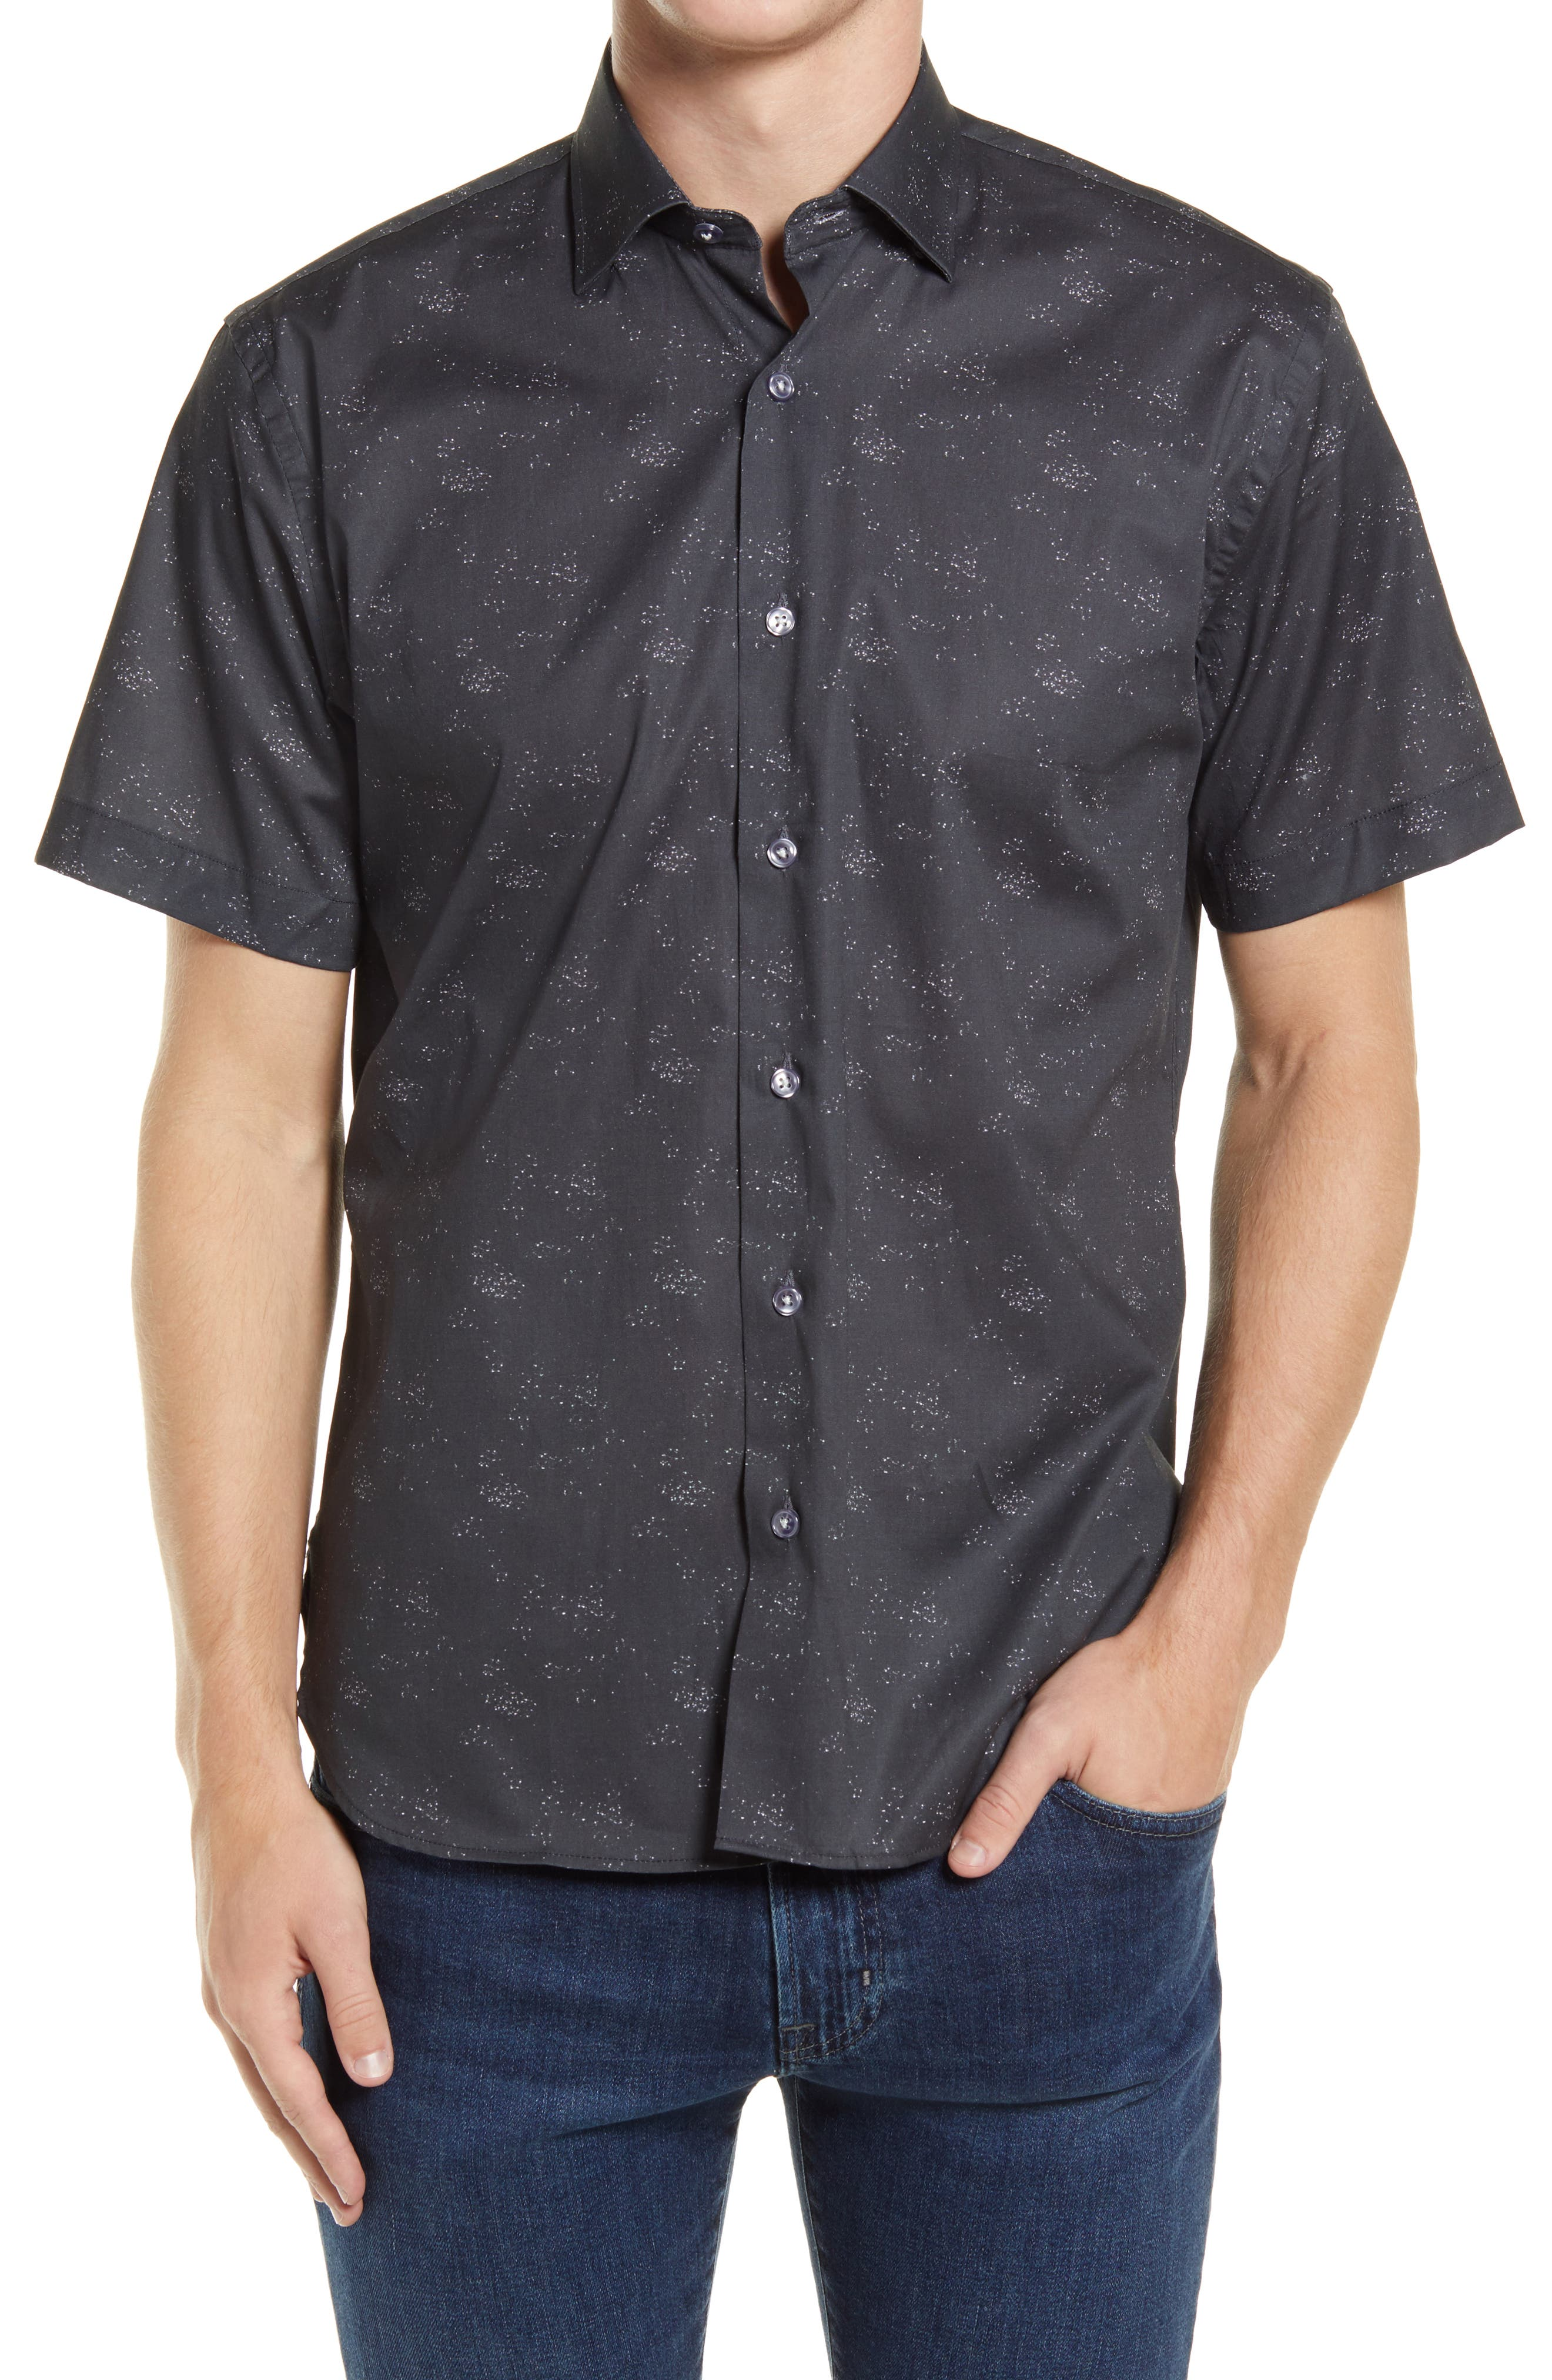 Outerspace Short Sleeve Stretch Button-Up Shirt